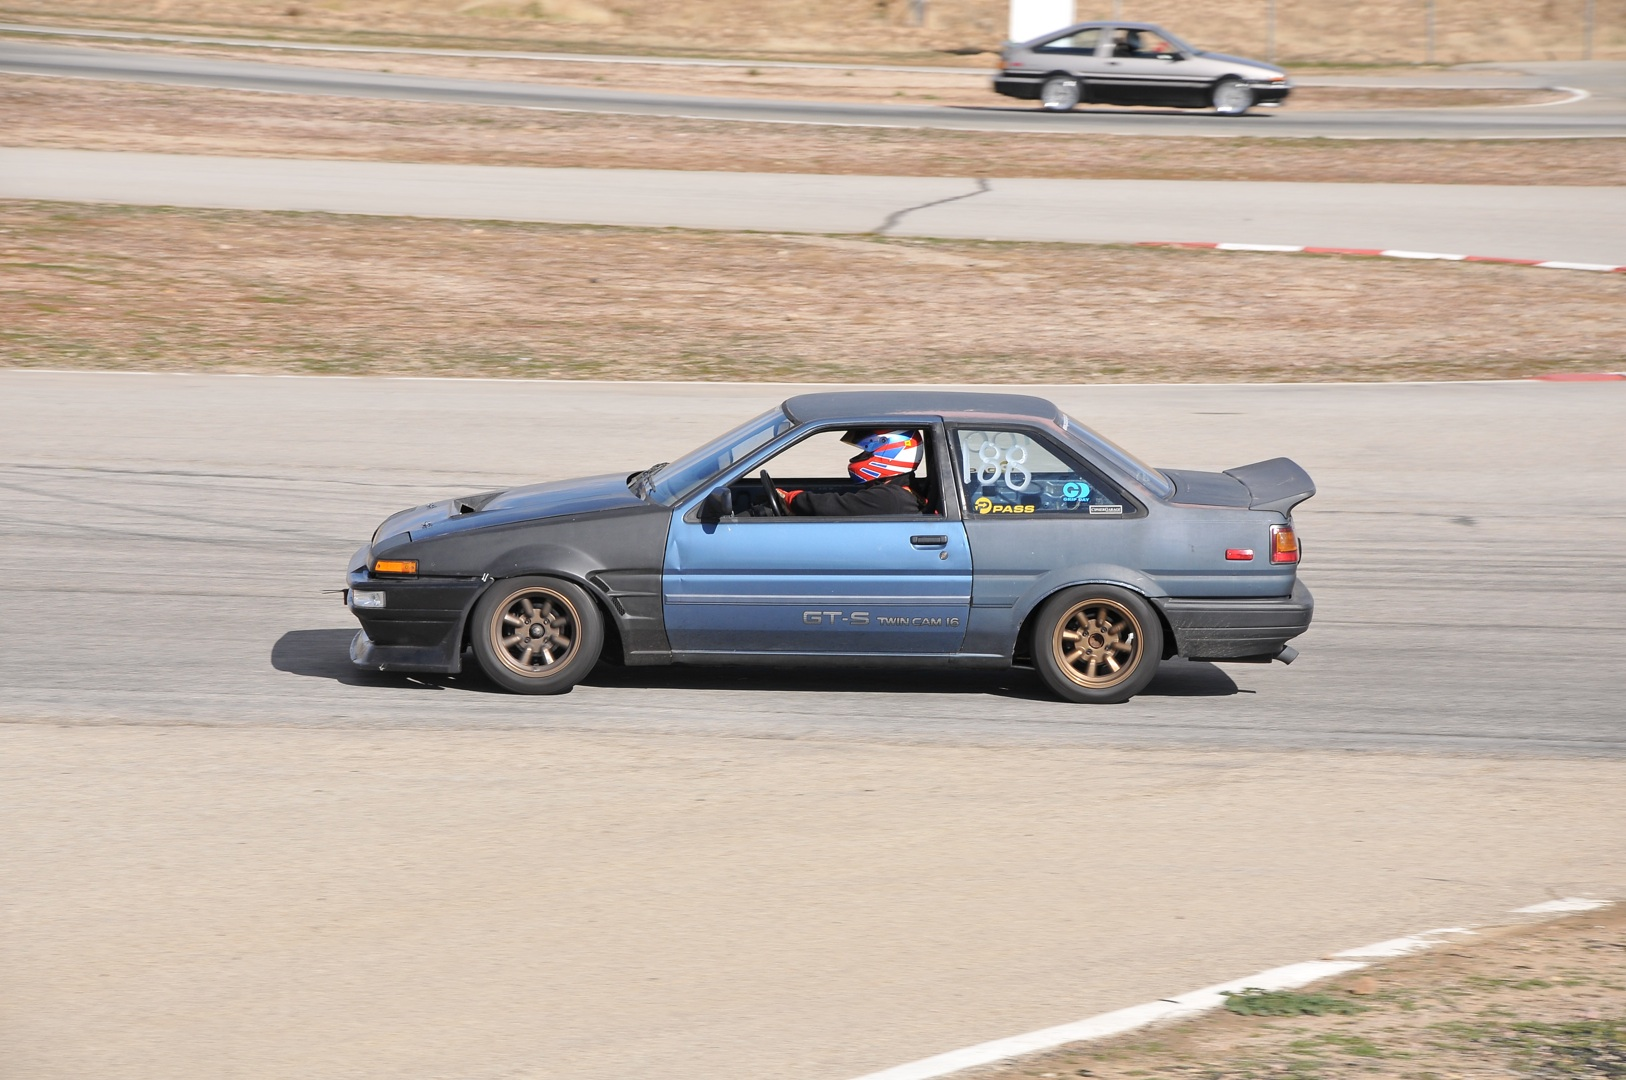 AE86, coupe, kouki,track day, grip day, watanabe